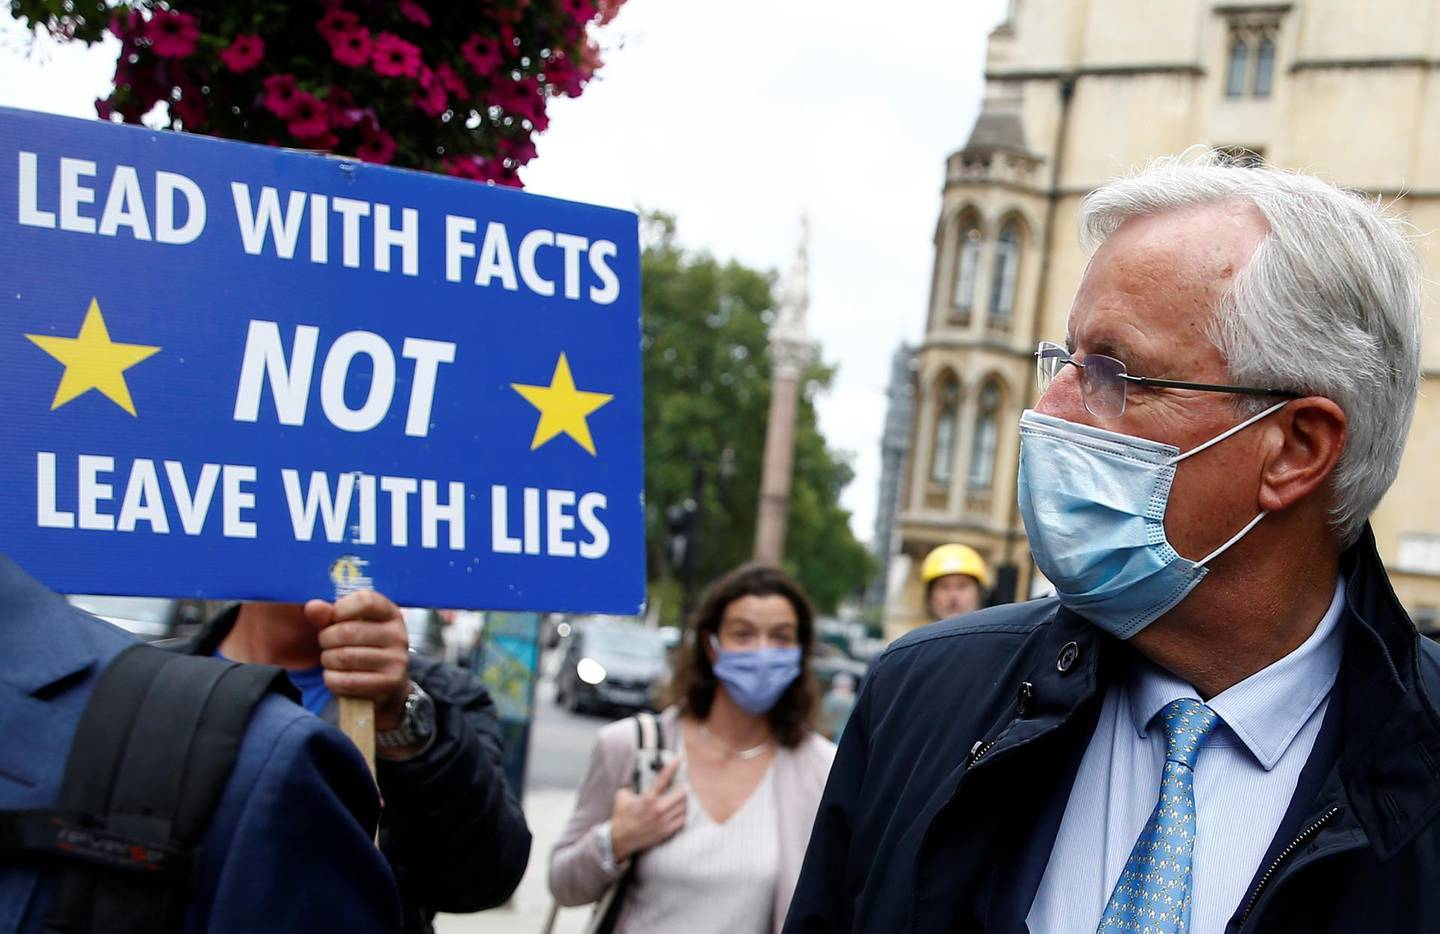 Anti-Brexit demonstrator Steve Bray holds a placard as EU's Chief Negotiator Michel Barnier walks with an entourage to a meeting in Westminster, London, Britain September 9, 2020. REUTERS/Henry Nicholls